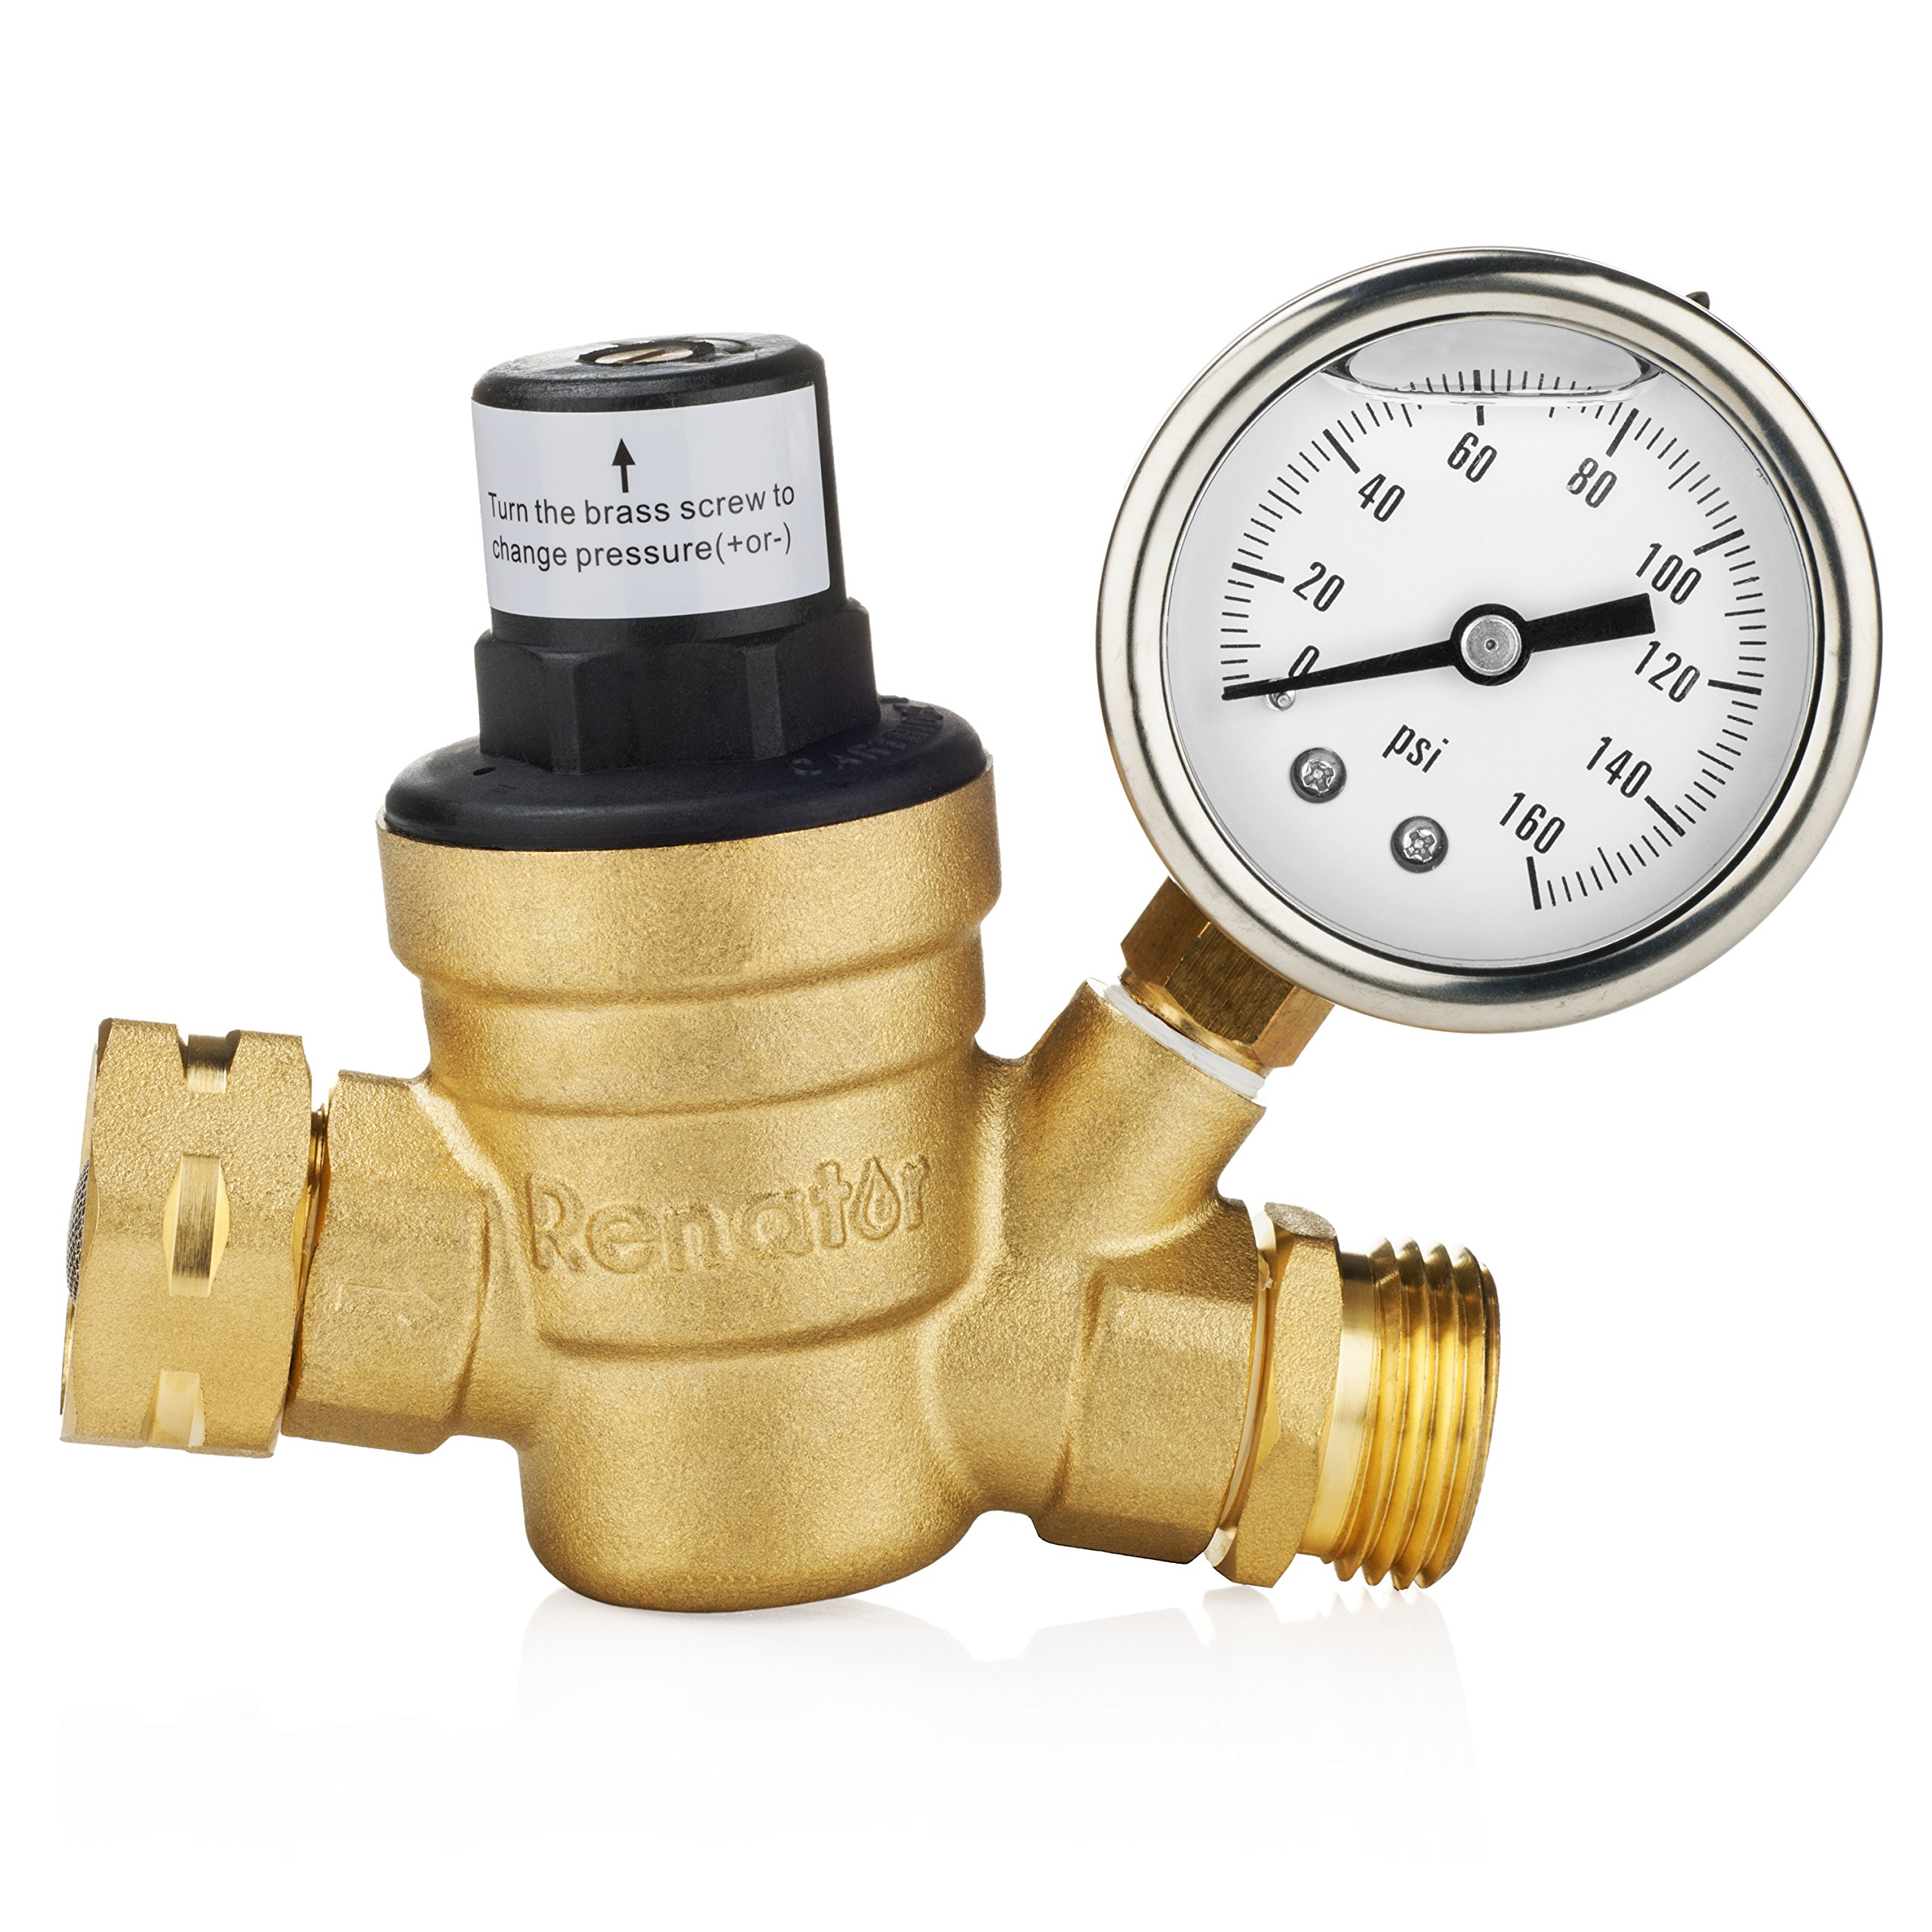 Renator M11-0660R Water Pressure Regulator Valve. Brass Lead-Free Adjustable Water Pressure Reducer with Gauge for RV Camper, and Inlet Screened Filter by Renator